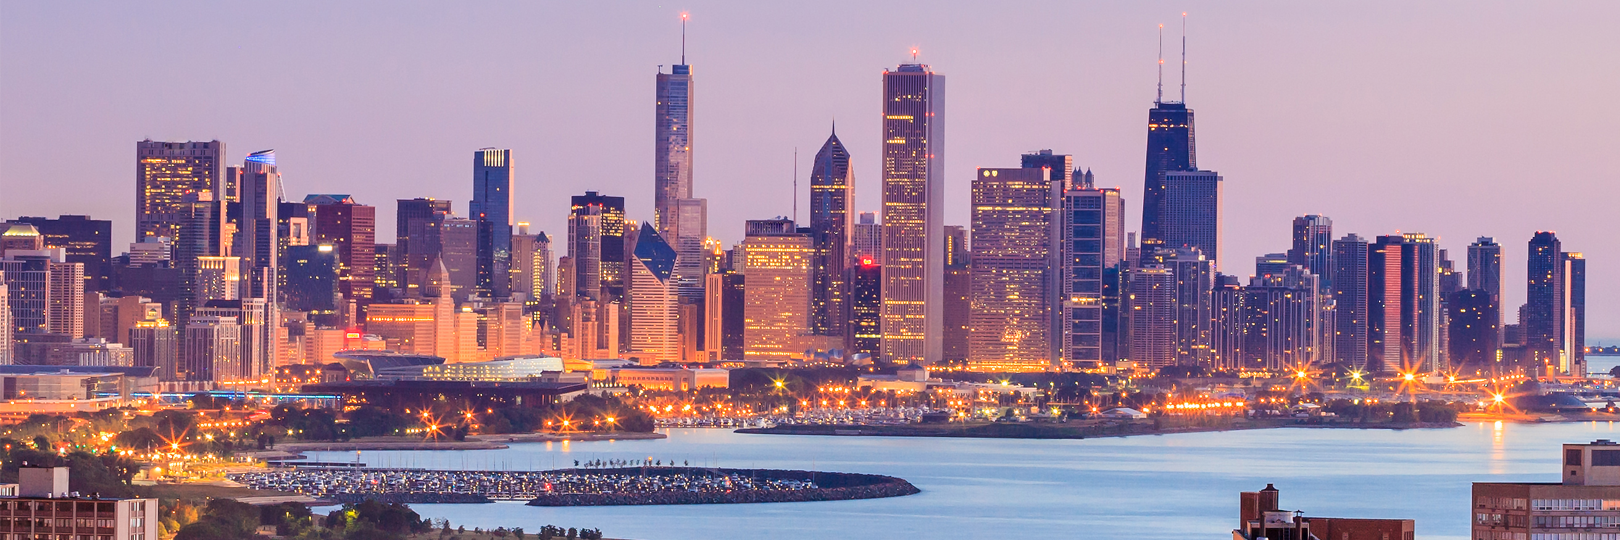 $115 for 1 night at Hilton Chicago/Indian Lakes Resort